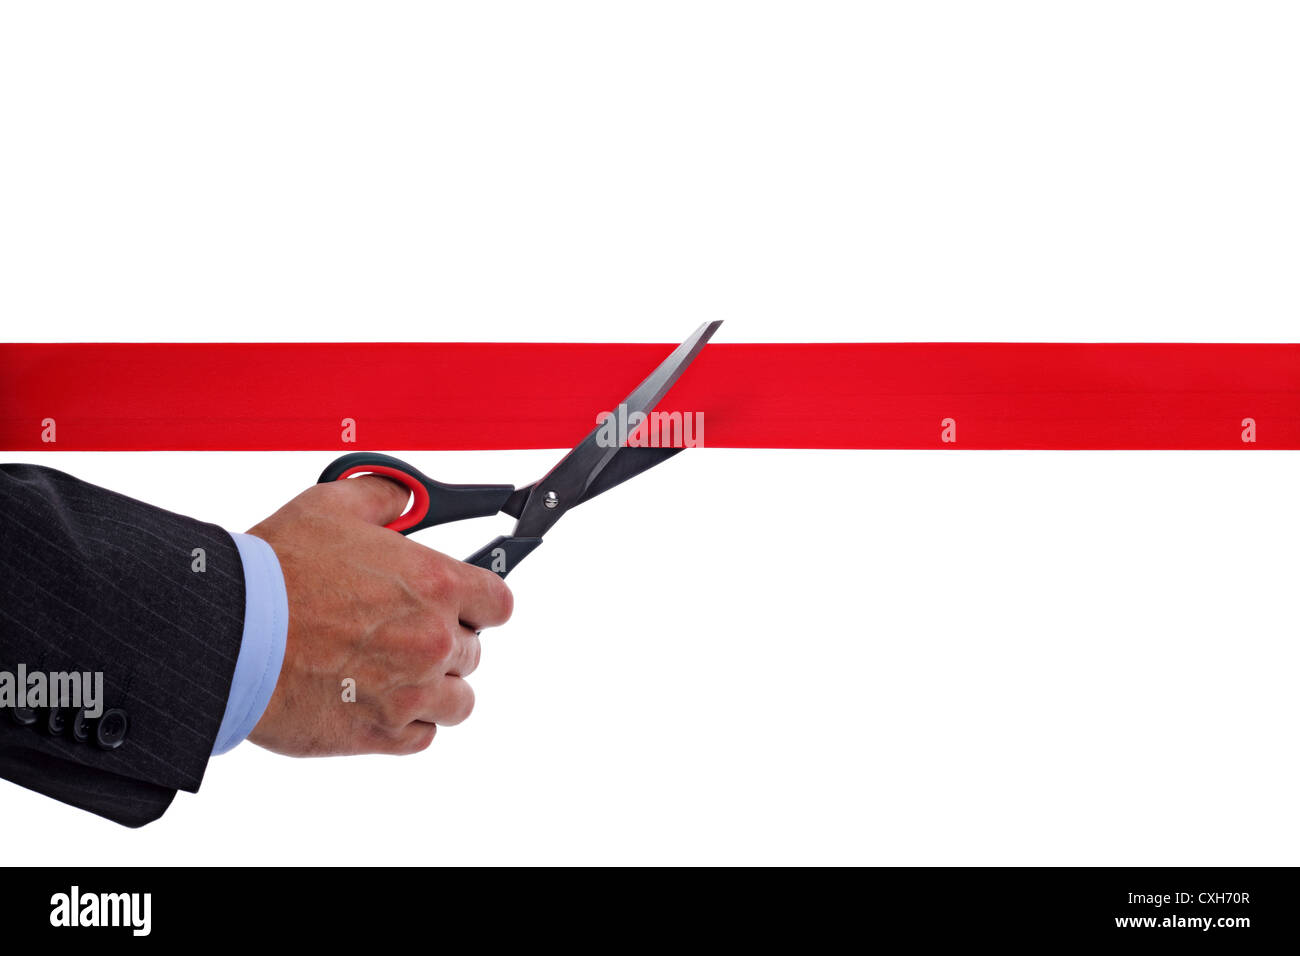 Cutting red tape - Stock Image